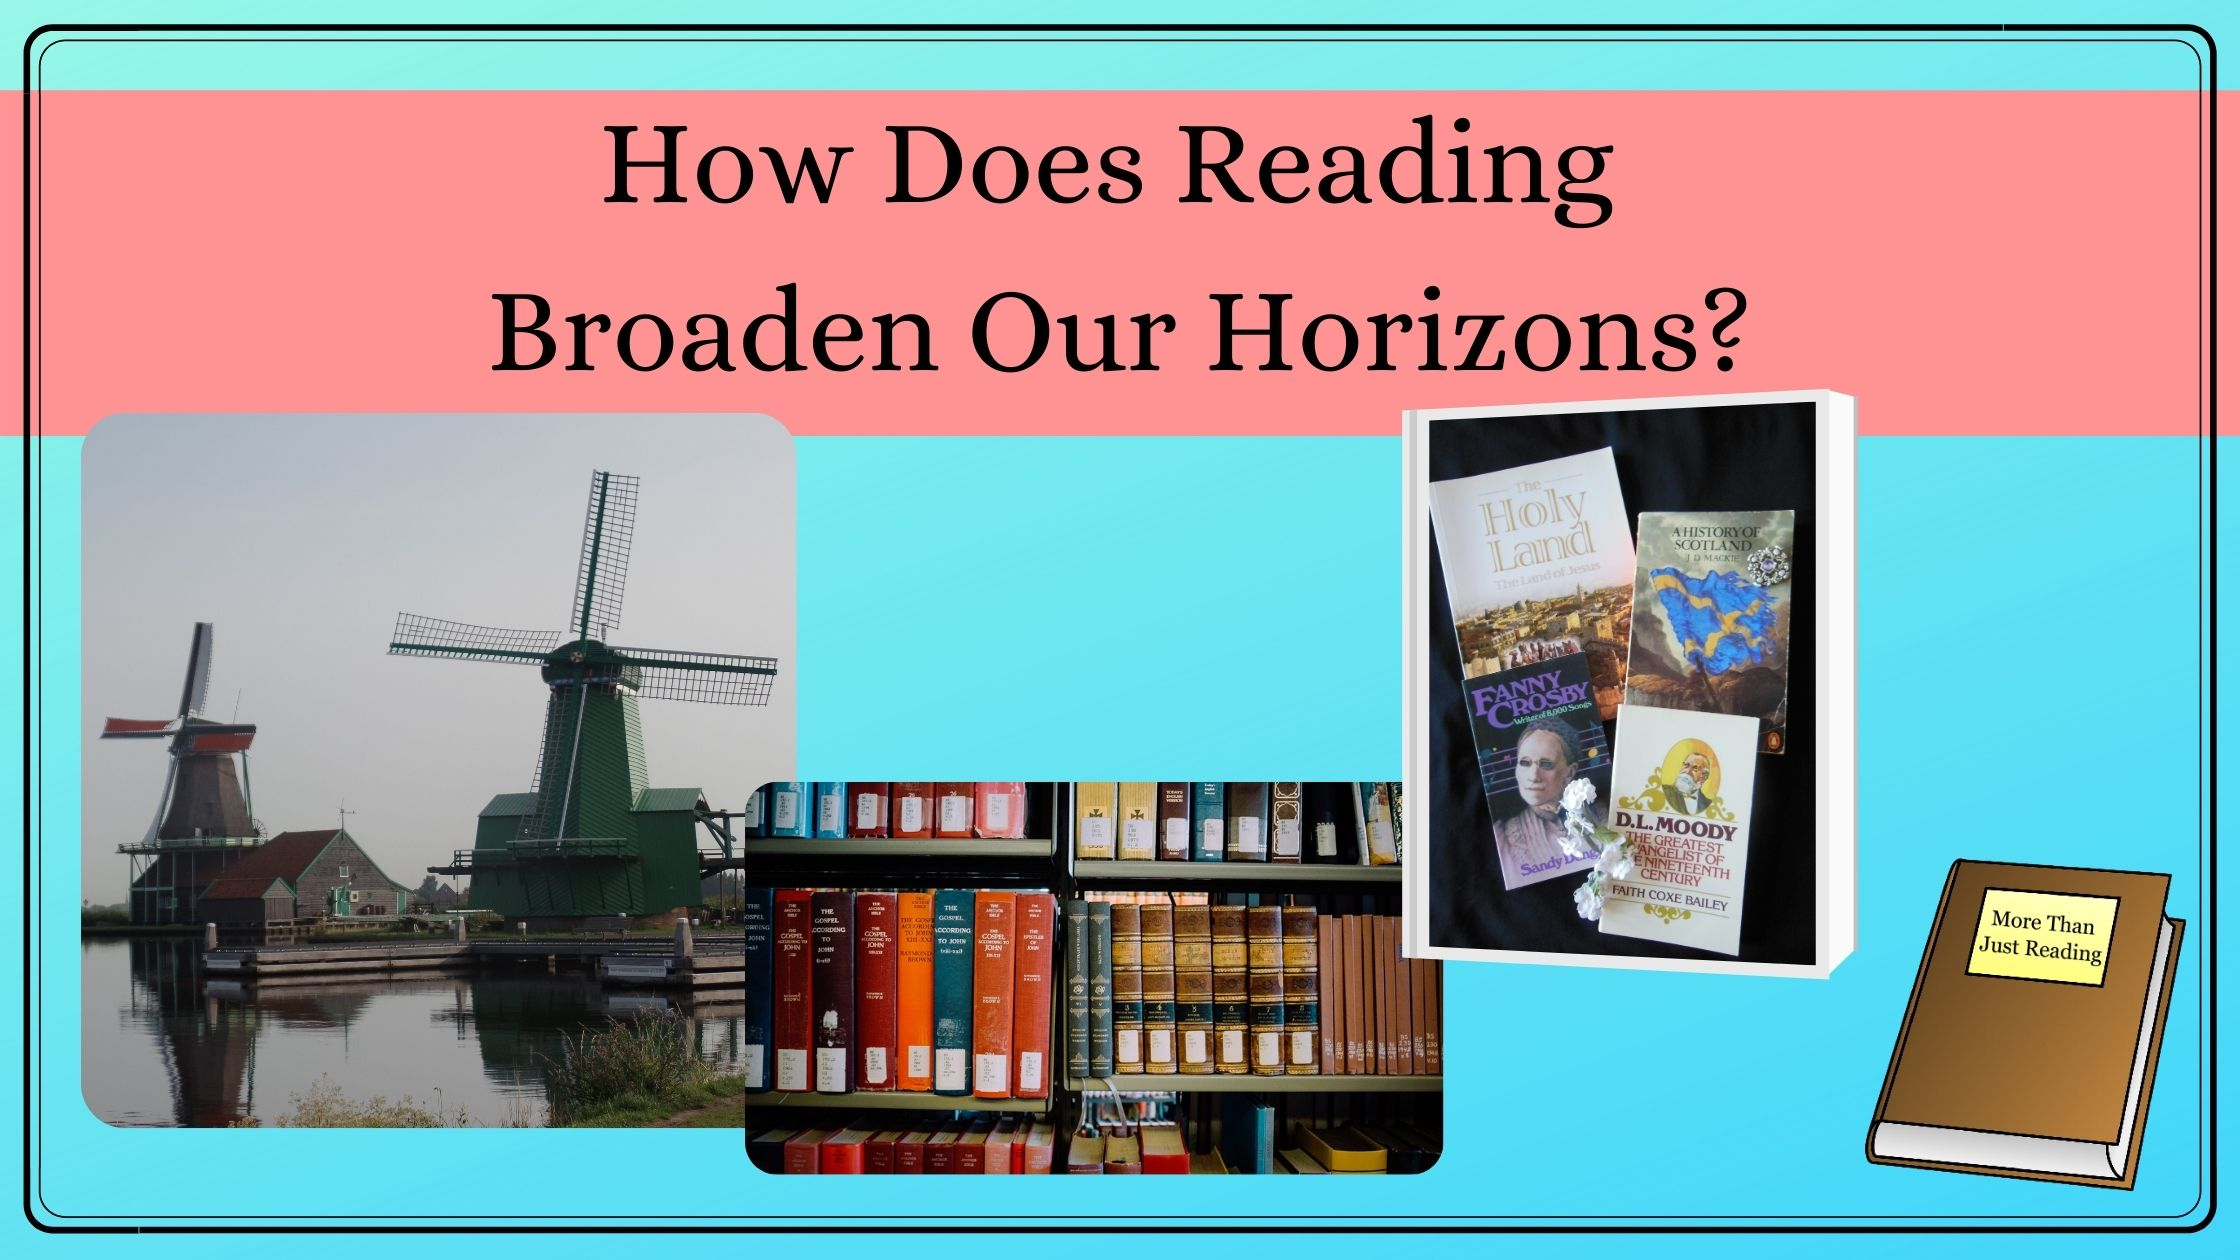 reading broadens our horizons